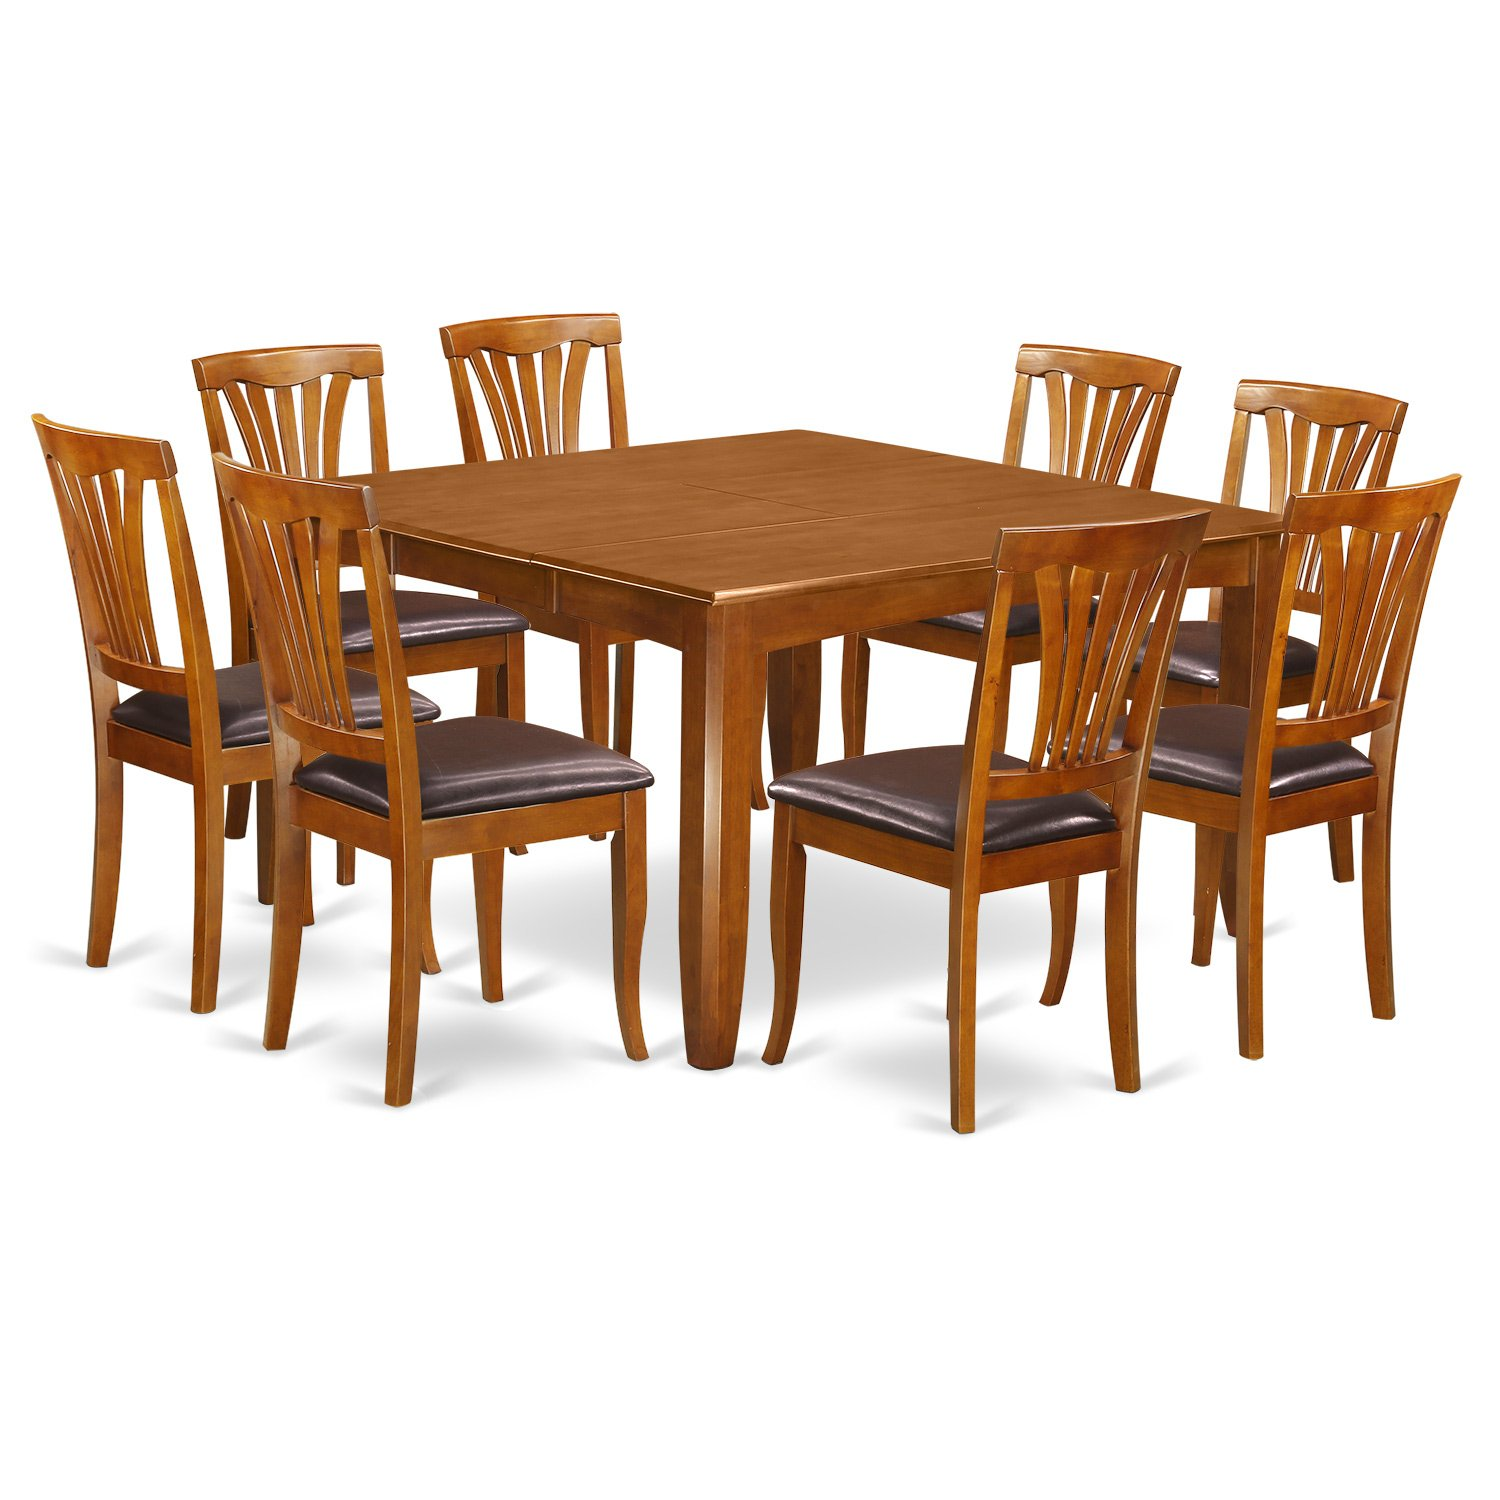 East West Furniture PFAV9-SBR-LC 9 Pc Dining Room Set-Table with Leaf and 8 Dining Chairs.